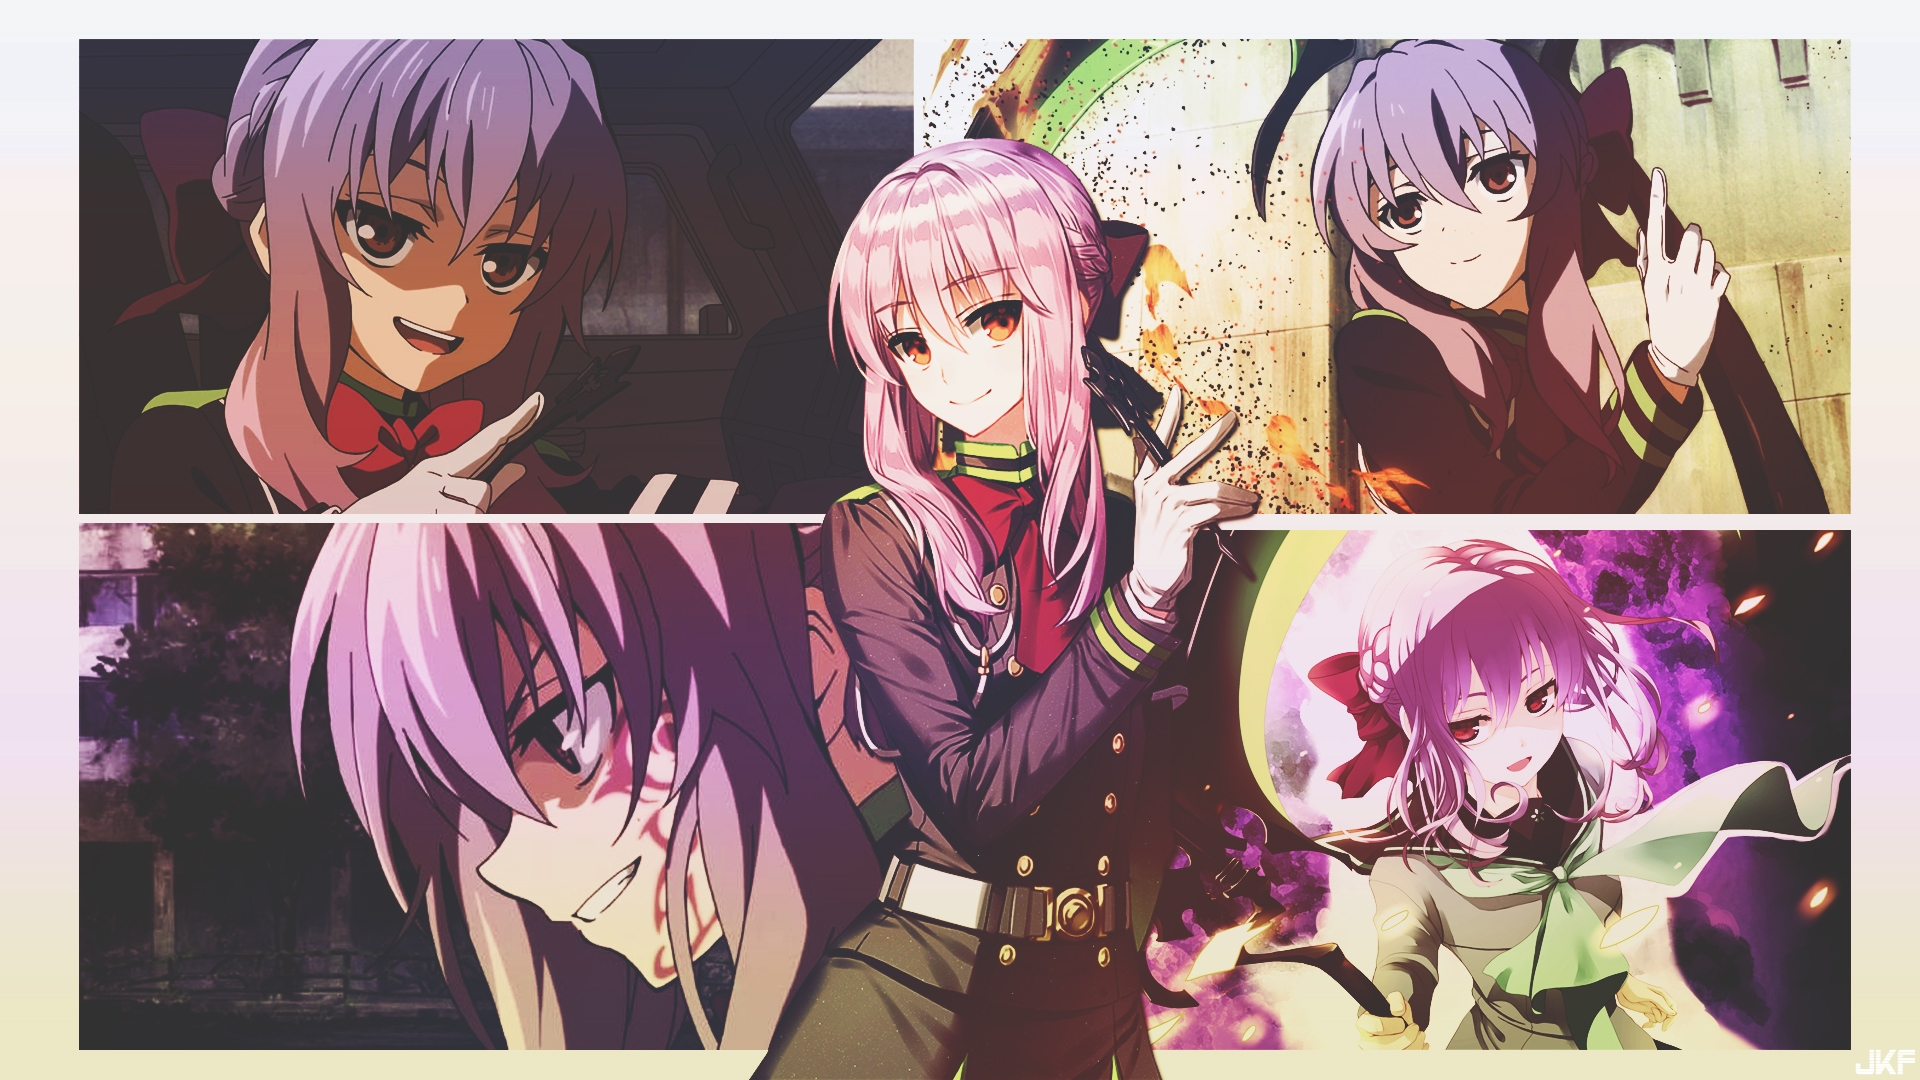 shinoa_wallpaper_by_dinocojv-da4avqv.jpg